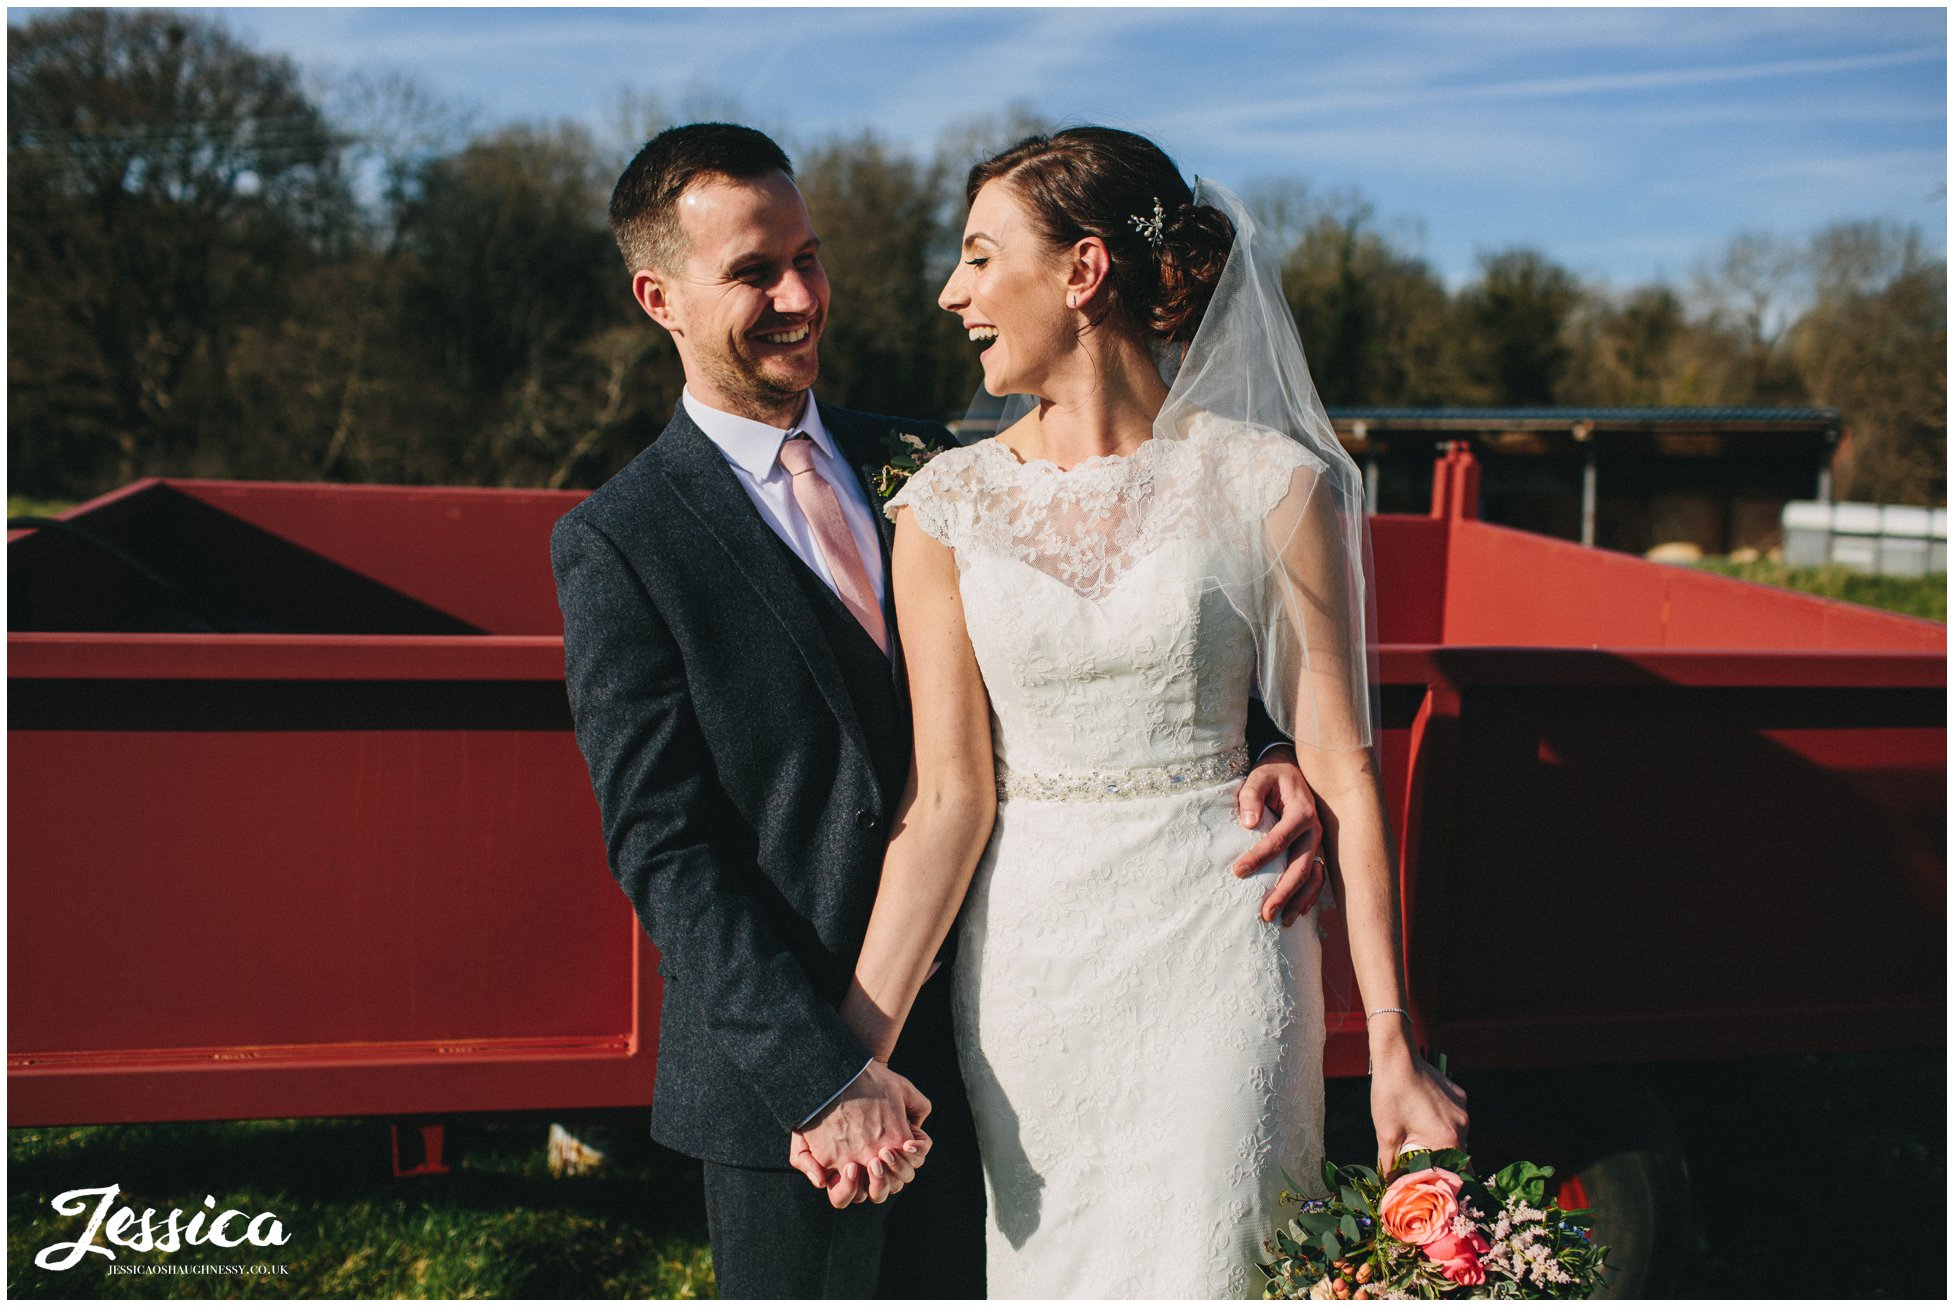 couple laugh in the sun with farm equipment behind them